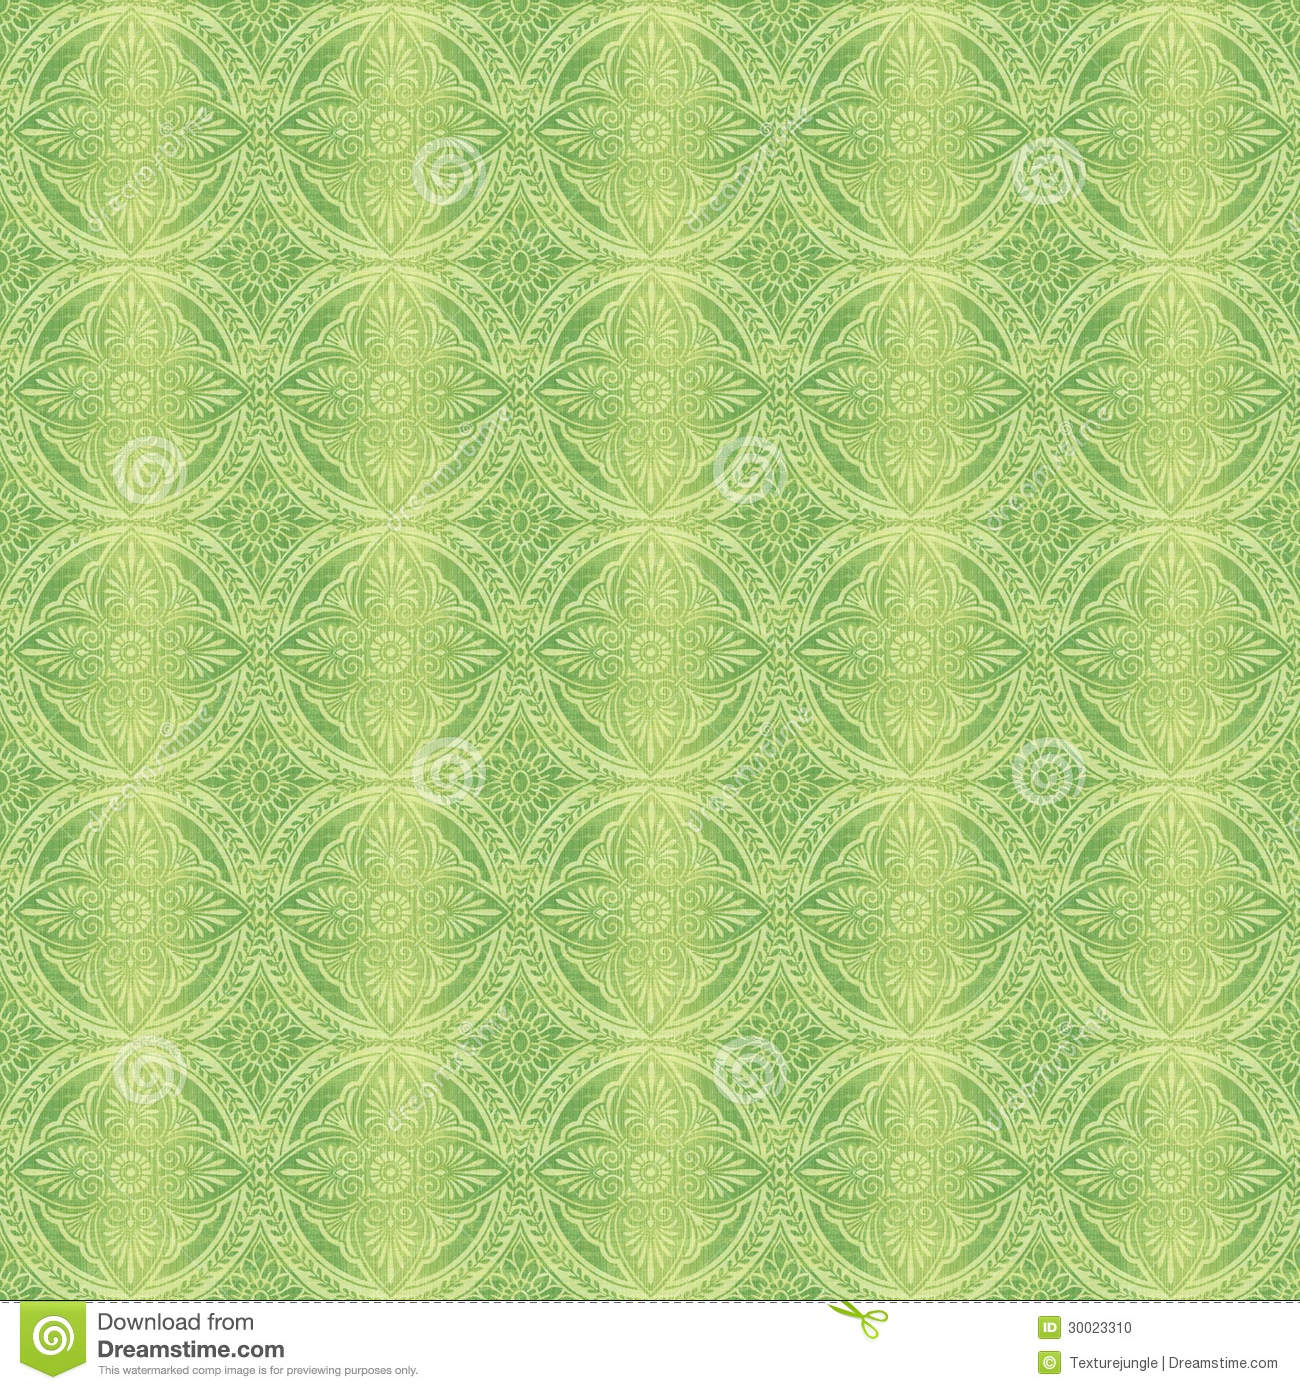 Green wallpapers: photo in the interior, the best ideas of the combination, the best advice of the designer on the choice and design 14